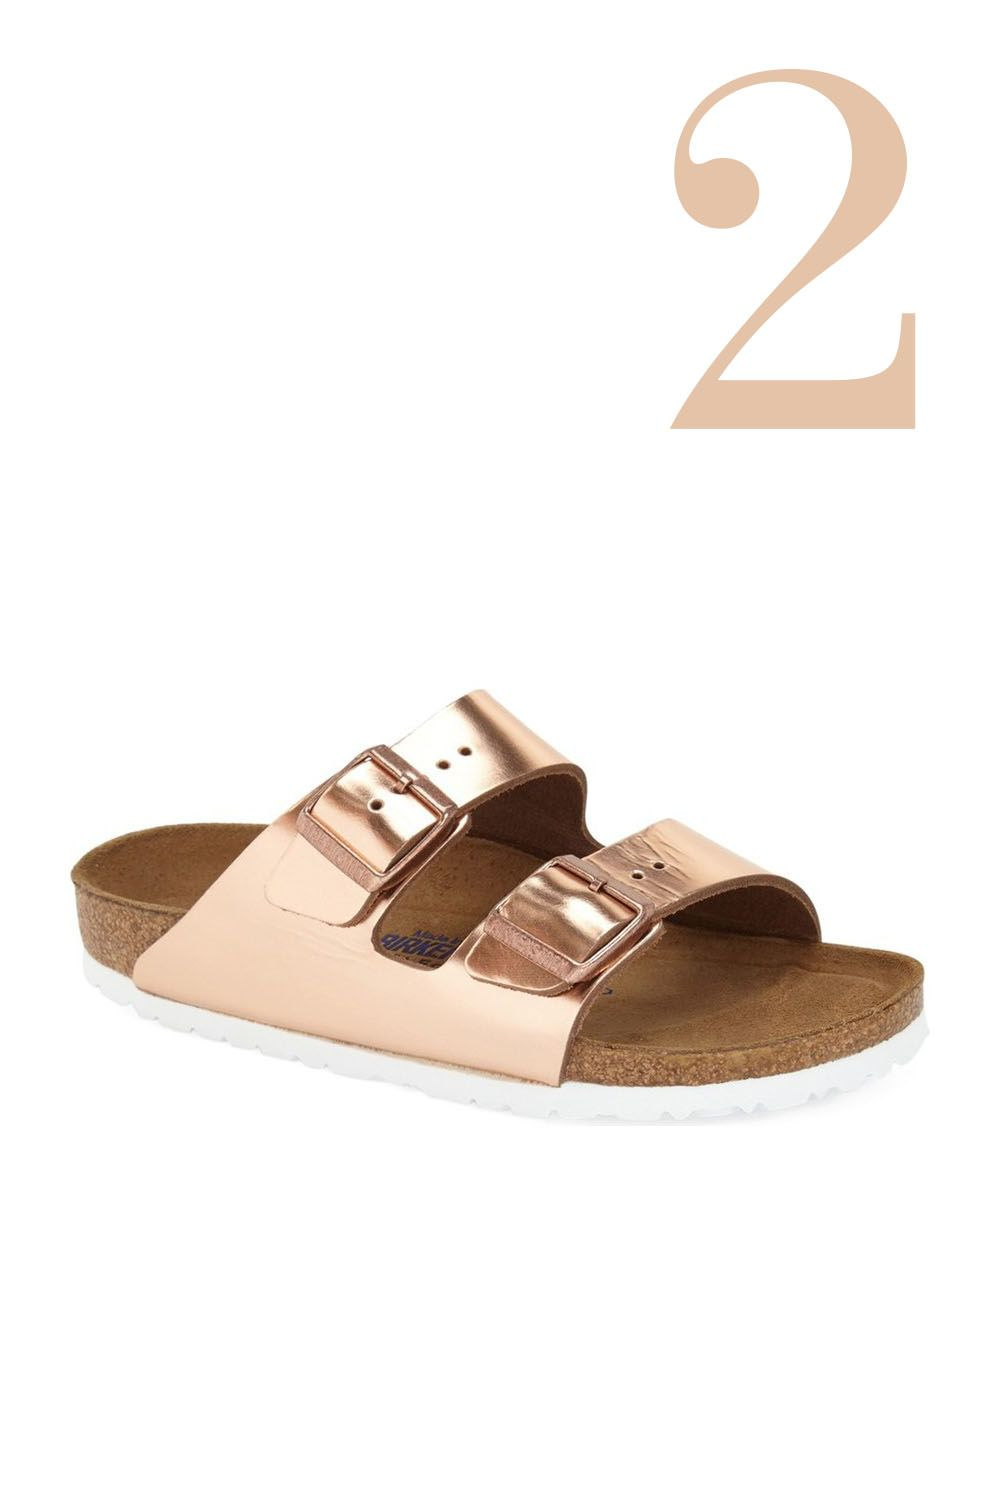 "<p>Yes, we're still obsessed with Birkenstocks—and will be forever because they feel <em>that</em><span class=""redactor-invisible-space""> good on your arches. </span></p><p><em><br></em></p><p><span class=""redactor-invisible-space""></span><em>Birkenstock 'Arizona' Soft Footbed Sandal, $135; </em><a href=""http://shop.nordstrom.com/s/birkenstock-arizona-soft-footbed-sandal-women/2895195?&cm_mmc=Mindshare_Nordstrom-_-JuneShoes-_-Hearst-_-proactive"" target=""_blank""><em>nordstrom.com</em></a></p><p><a href=""http://shop.nordstrom.com/s/birkenstock-arizona-soft-footbed-sandal-women/2895195?origin=keywordsearch-personalizedsort&fashioncolor=SILVER%20METALLIC%20LEATHER"" target=""_blank""></a></p>"